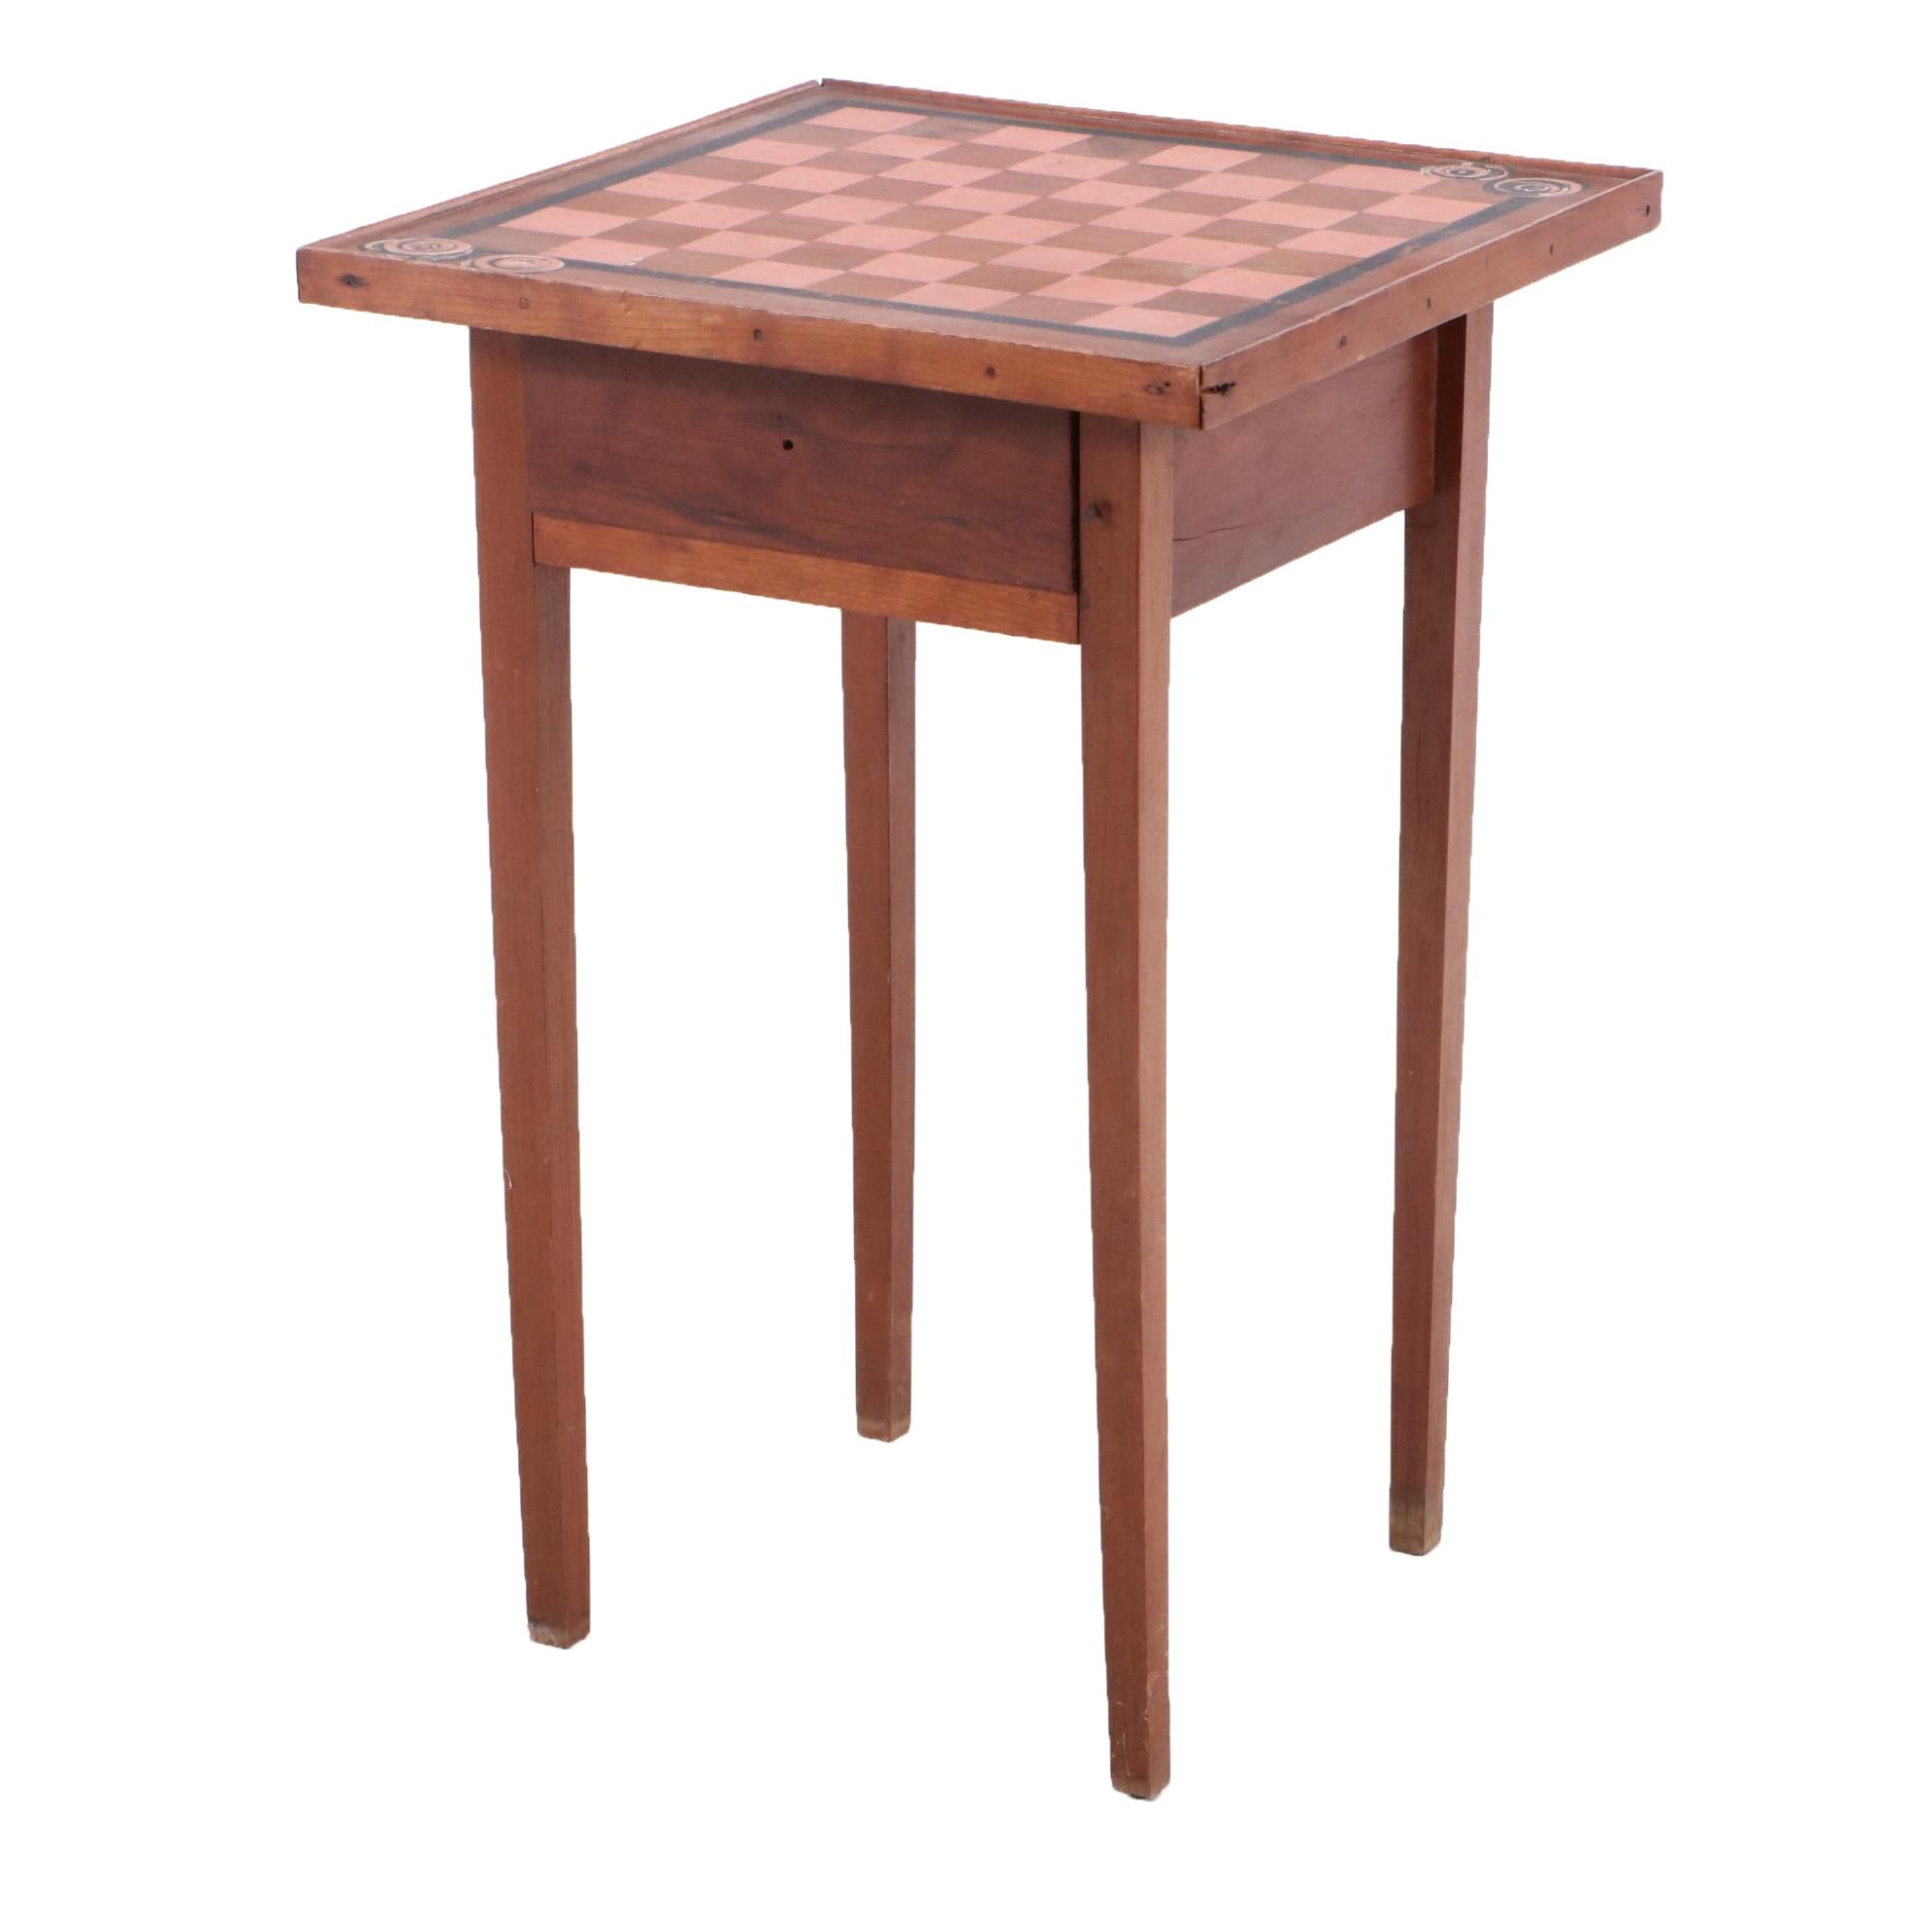 19th-Century Cherry Side Table with Painted Checkerboard Top